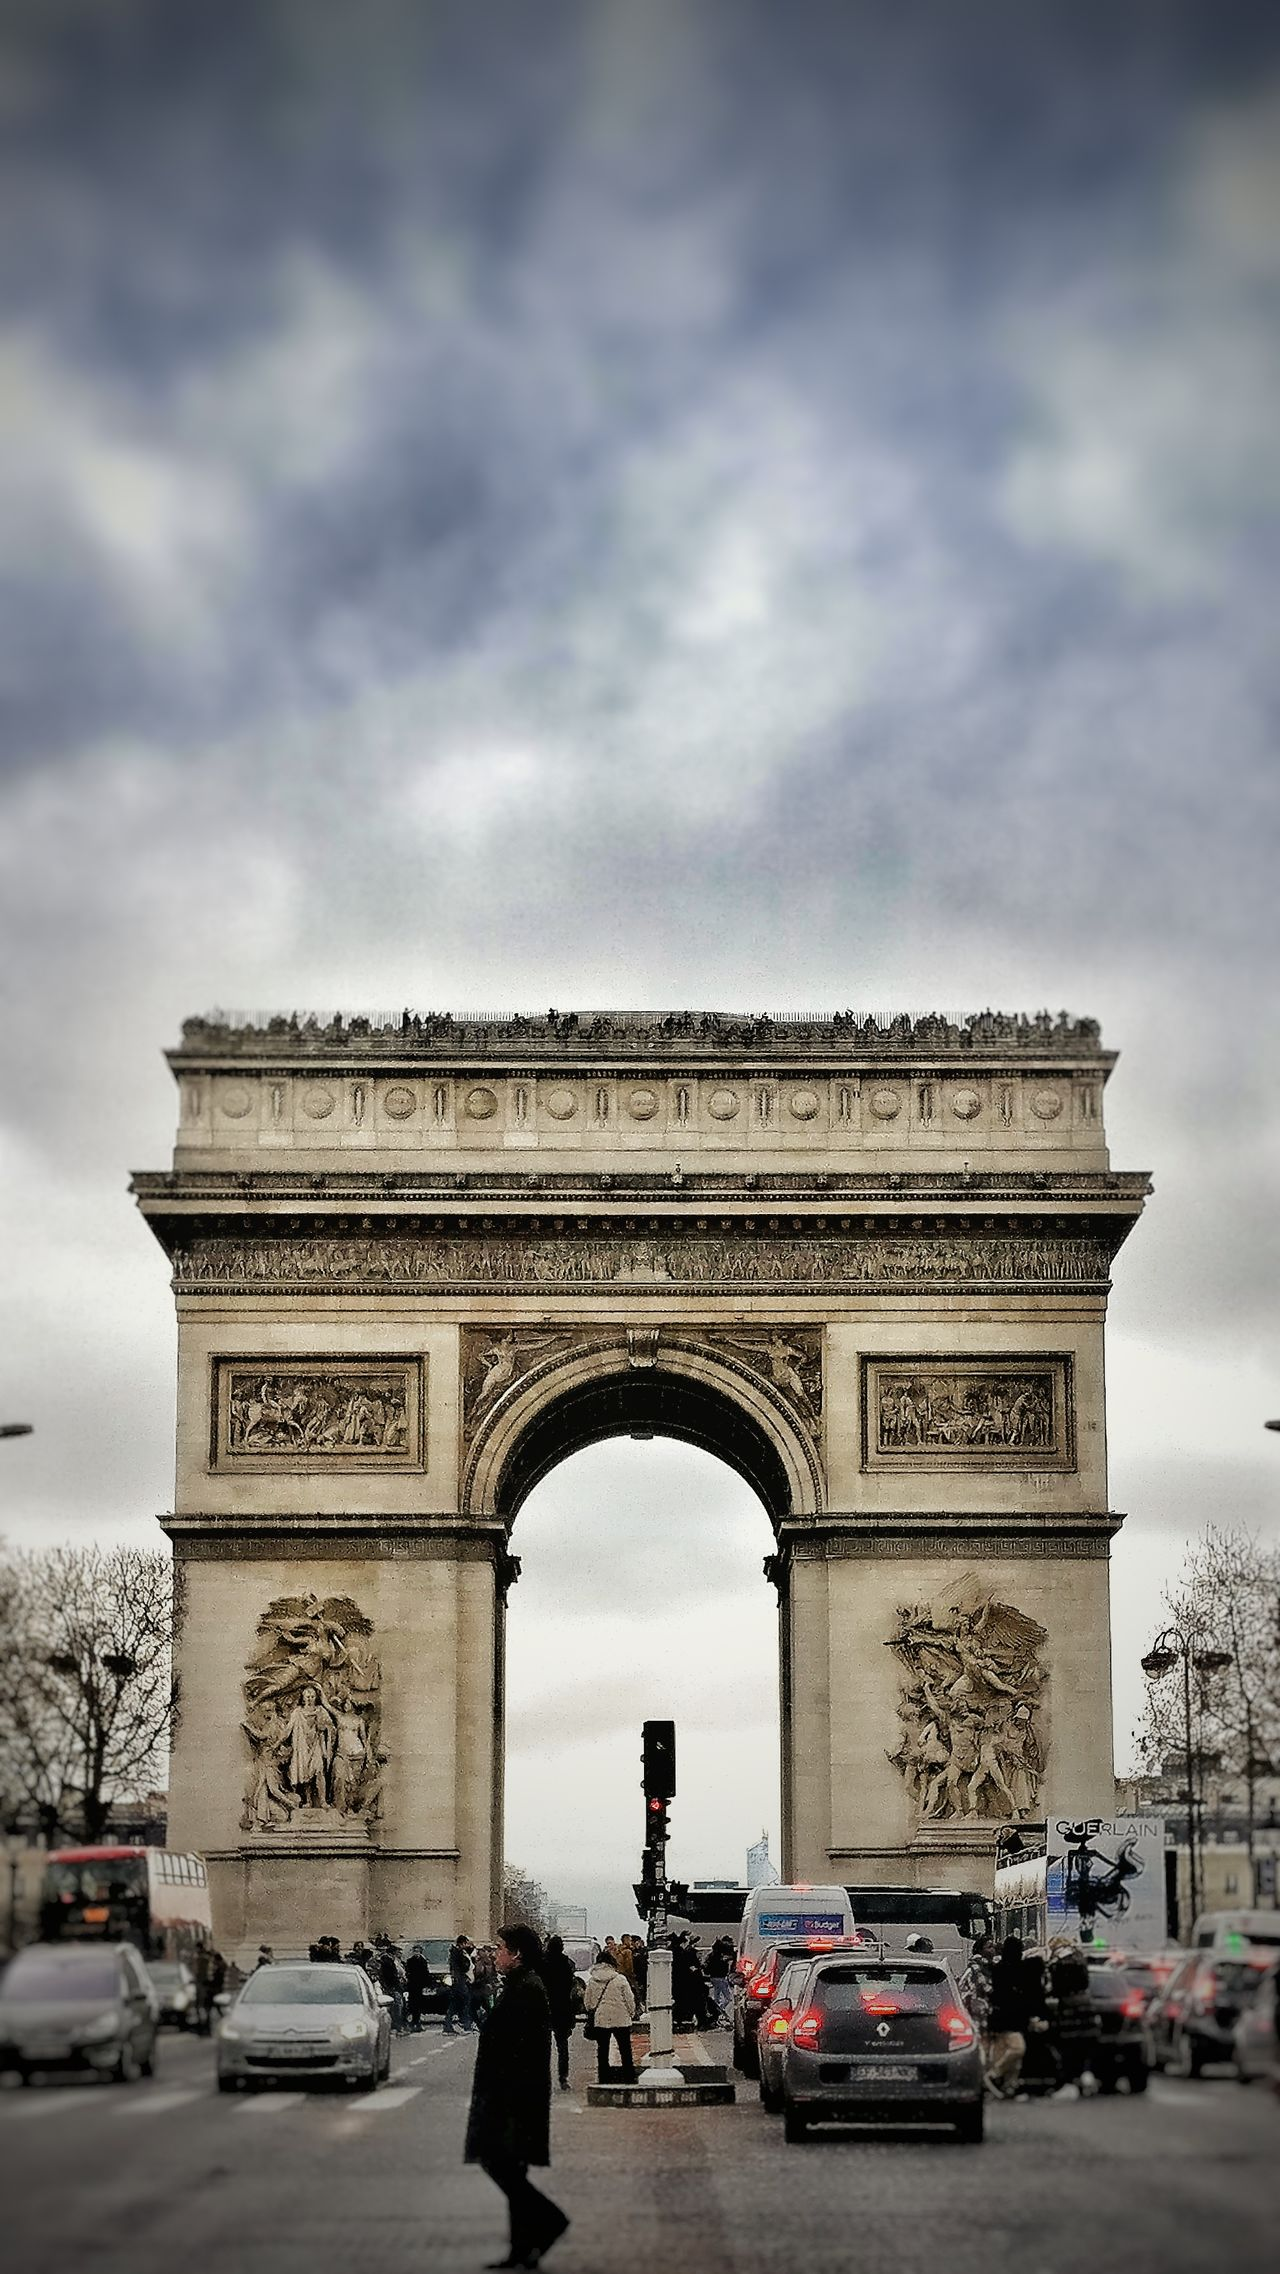 City Travel Destinations Triumphal Arch Car Arch History Architecture Sky Outdoors Cloud - Sky People Day Snapseed Oneplus3 OneplusShot Paris Champselysées Plus Belle Avenue Du Monde France 🇫🇷 PhonePhotography AndroidPhotography Tourist Attraction  City Building Exterior Architecture